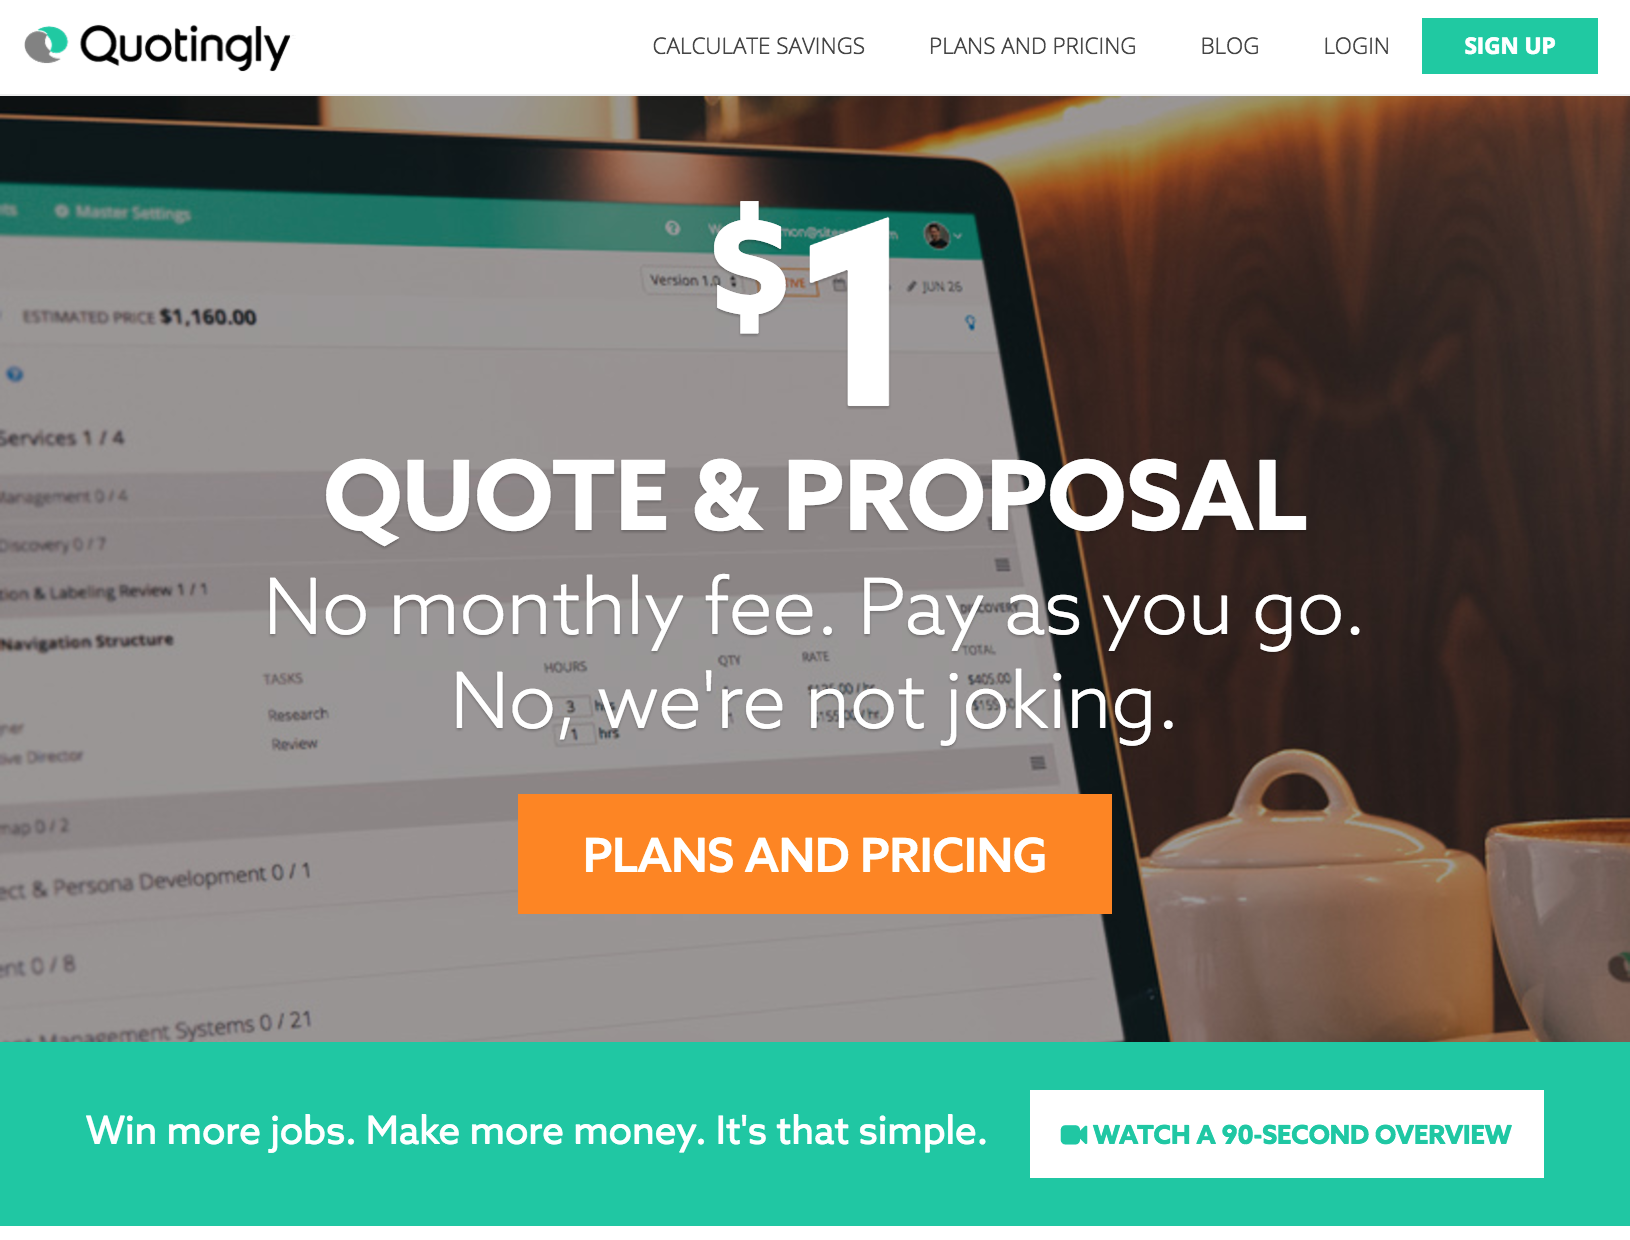 """Quotingly.com Landing Page - """"Watch a 90-Second Overview"""" appears in the bottom right."""